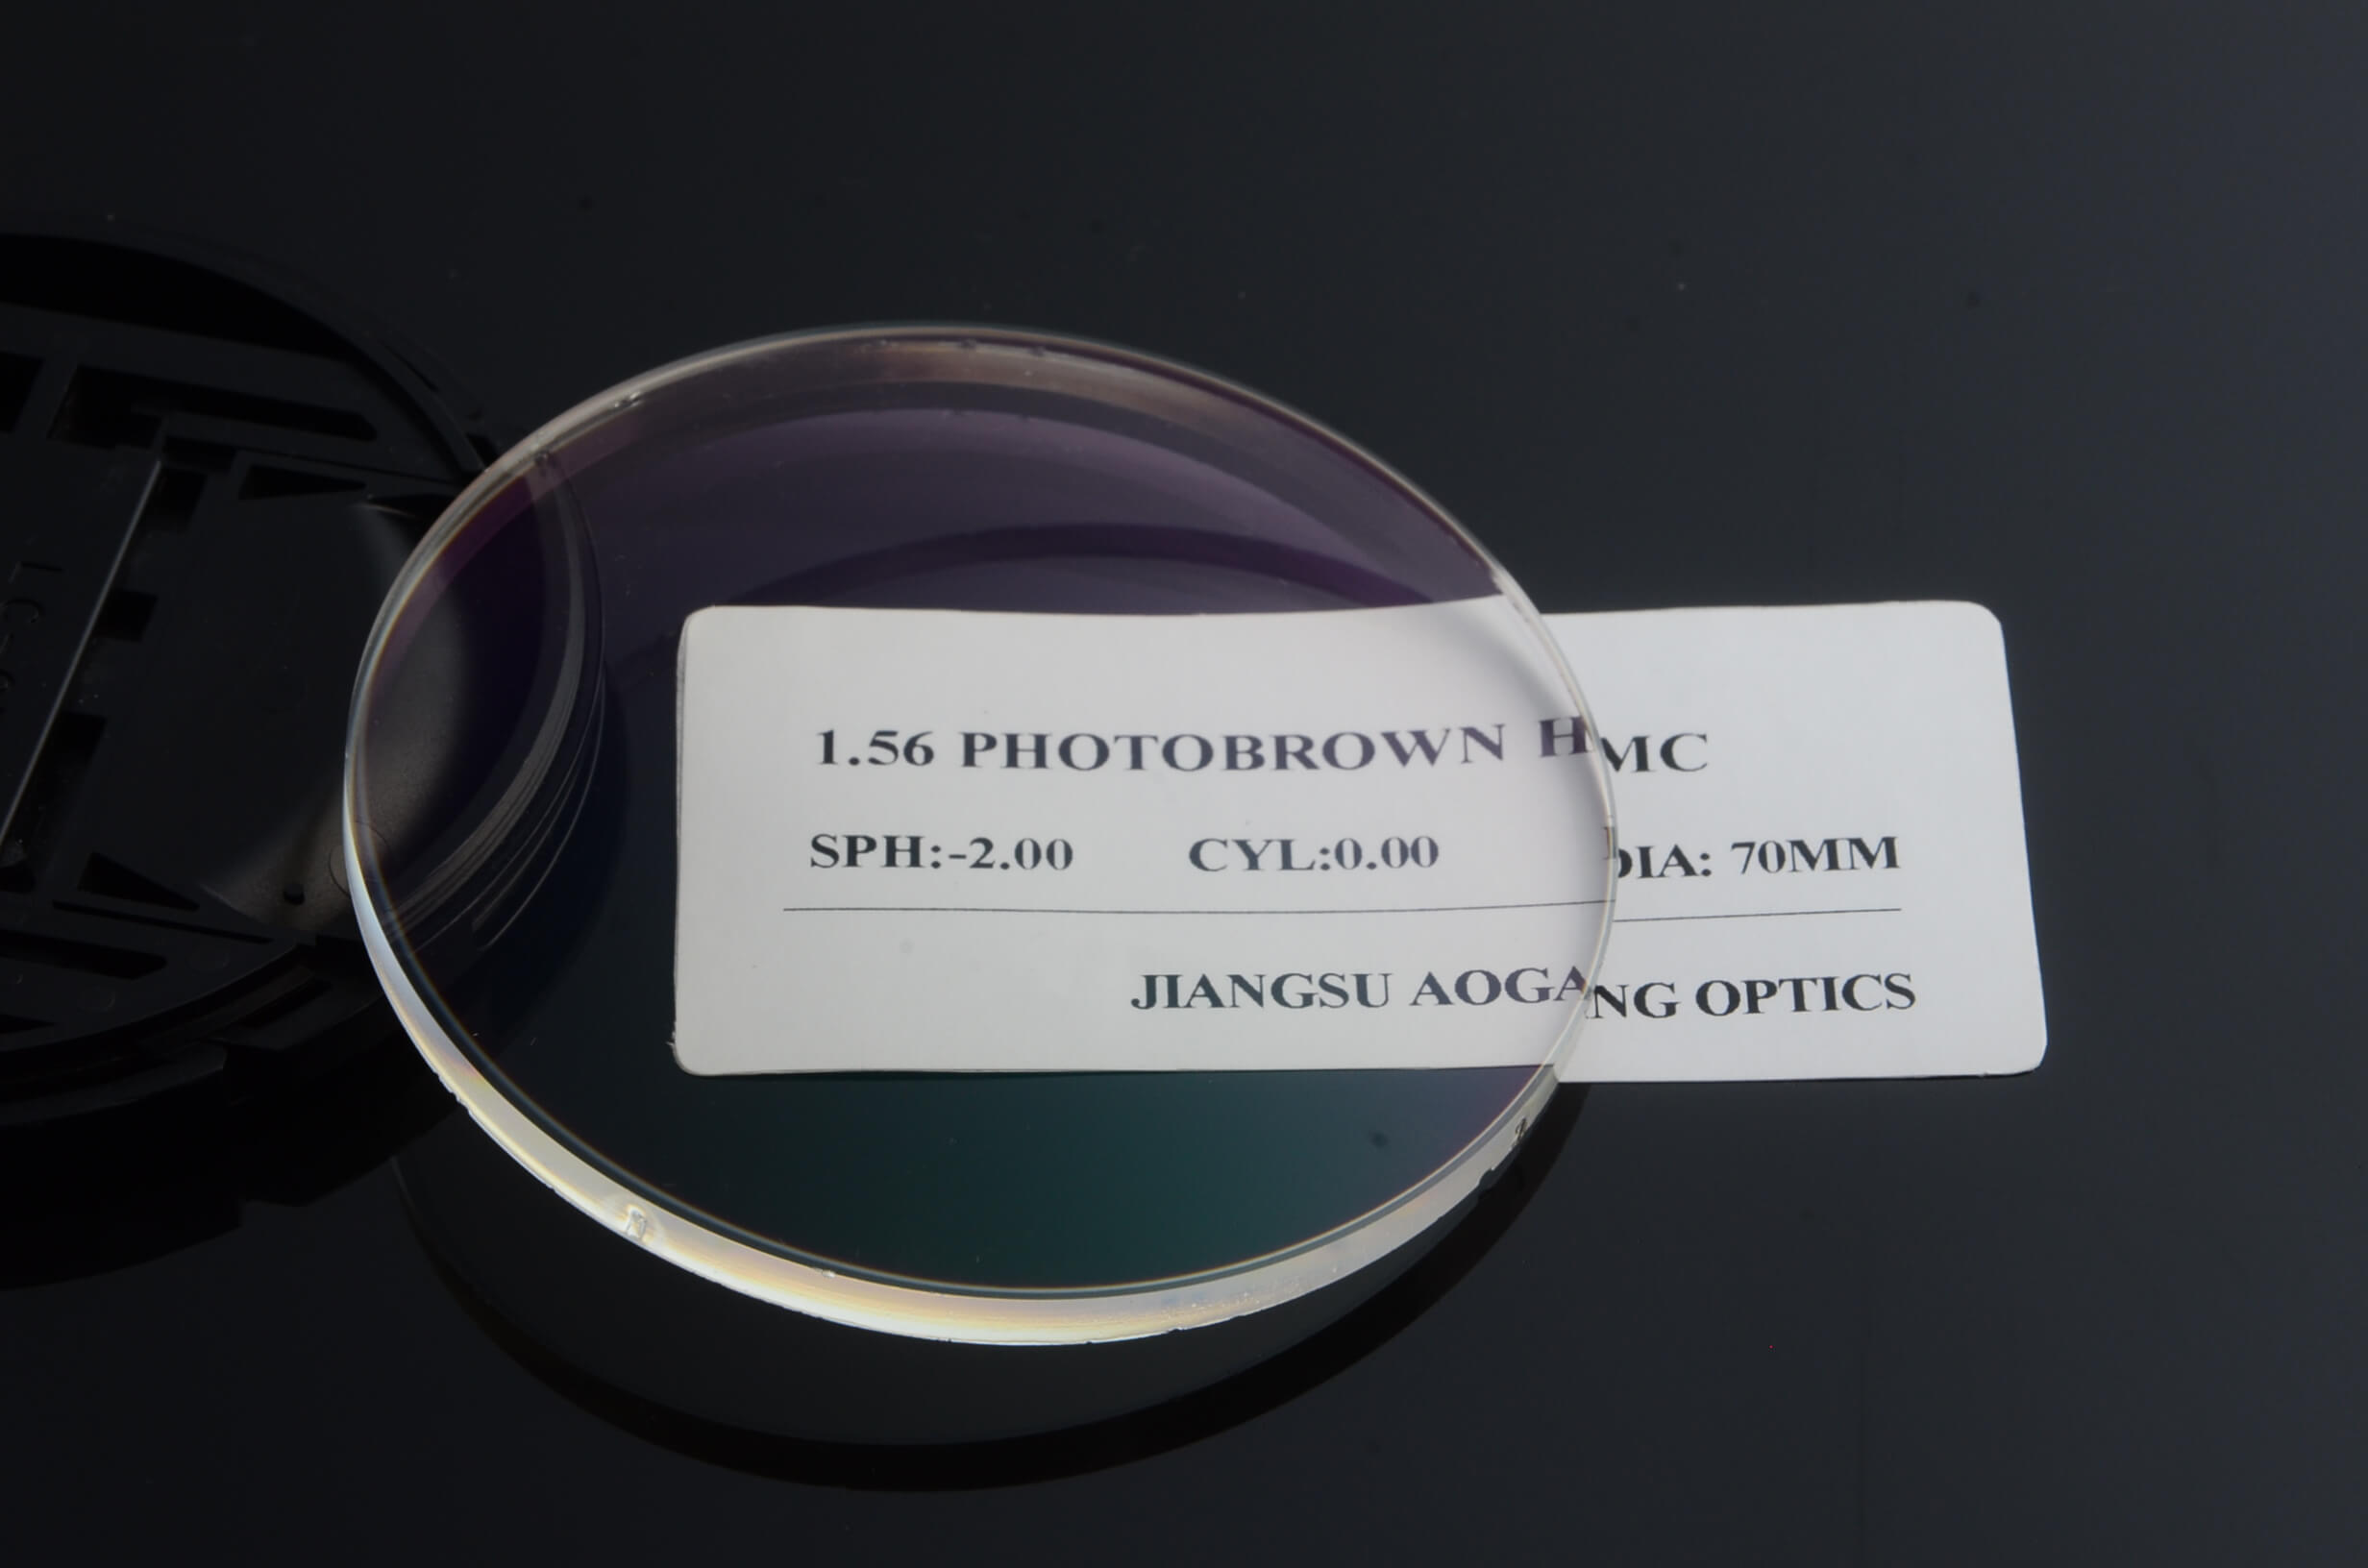 Index 1.56 photochromic photo grey HMC AR transition ophthalmic lens optical prescription anti reflection